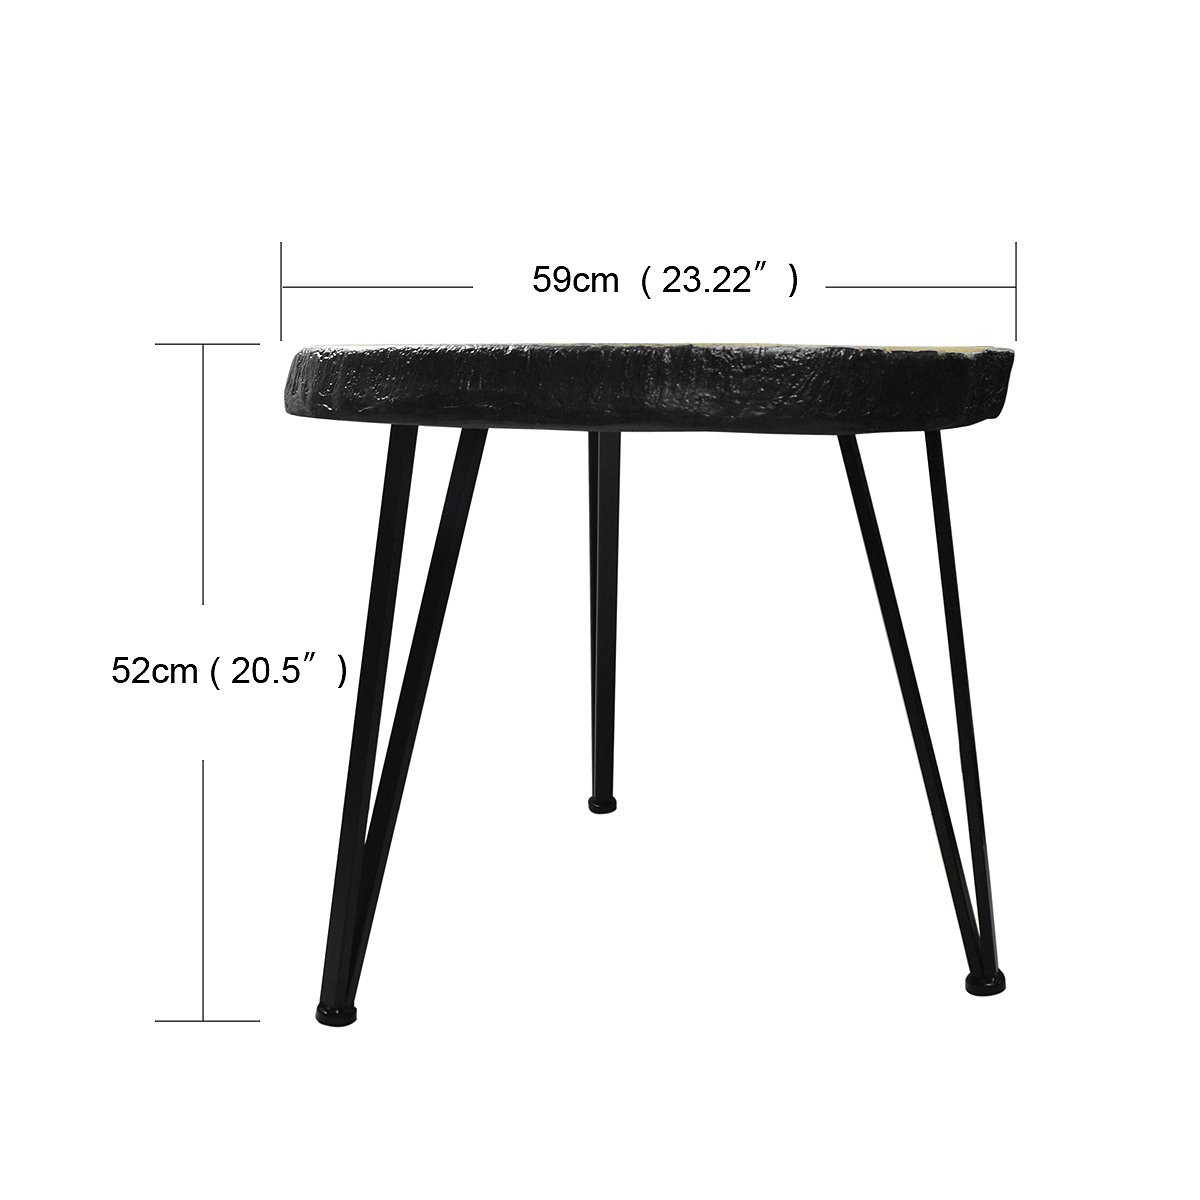 Suneon End Tables, Imitation Wood(Magnesium Oxide) Coffee Side Table for Living Room,Bedroom,Balcony,Garden and Office by SUNEON (Image #2)